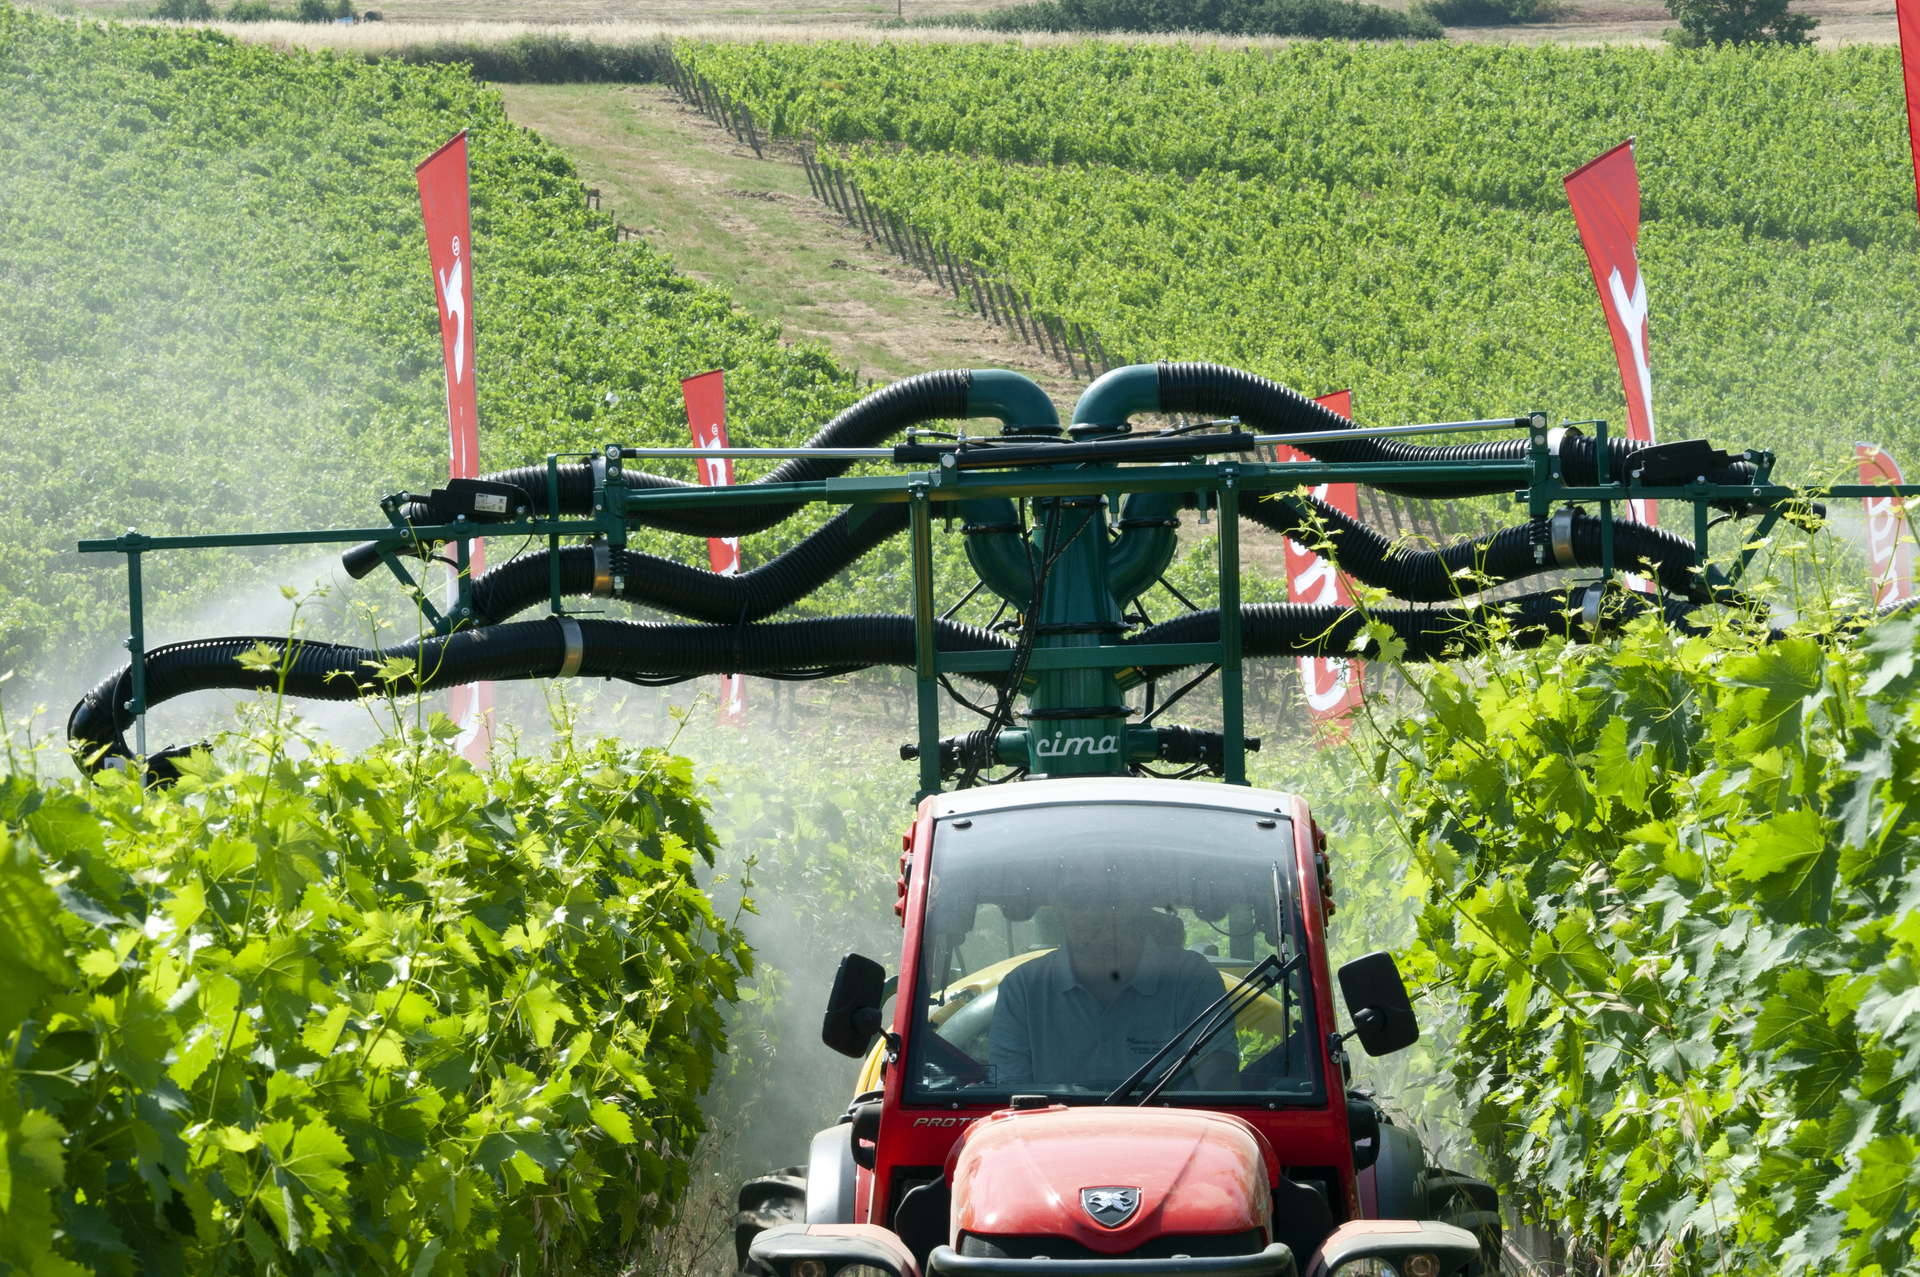 3-point mounted sprayers with 6 hands 4 cannons sprayhead